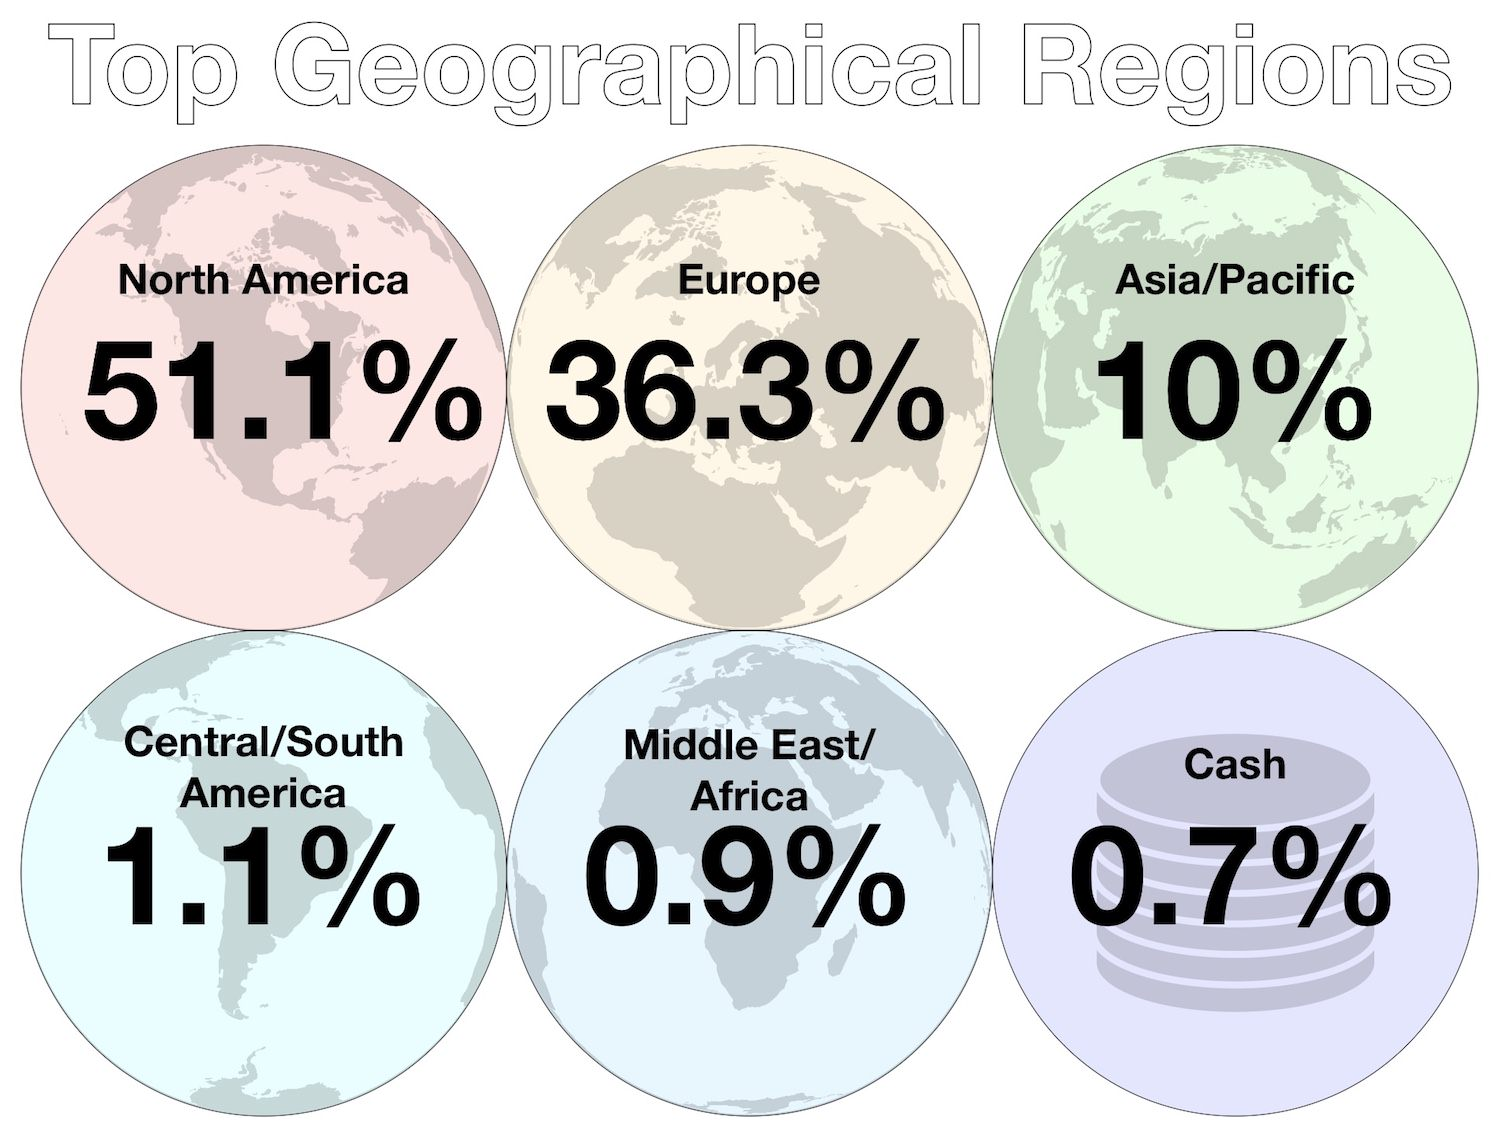 Investments - August 2018 - Top Geographical Regions